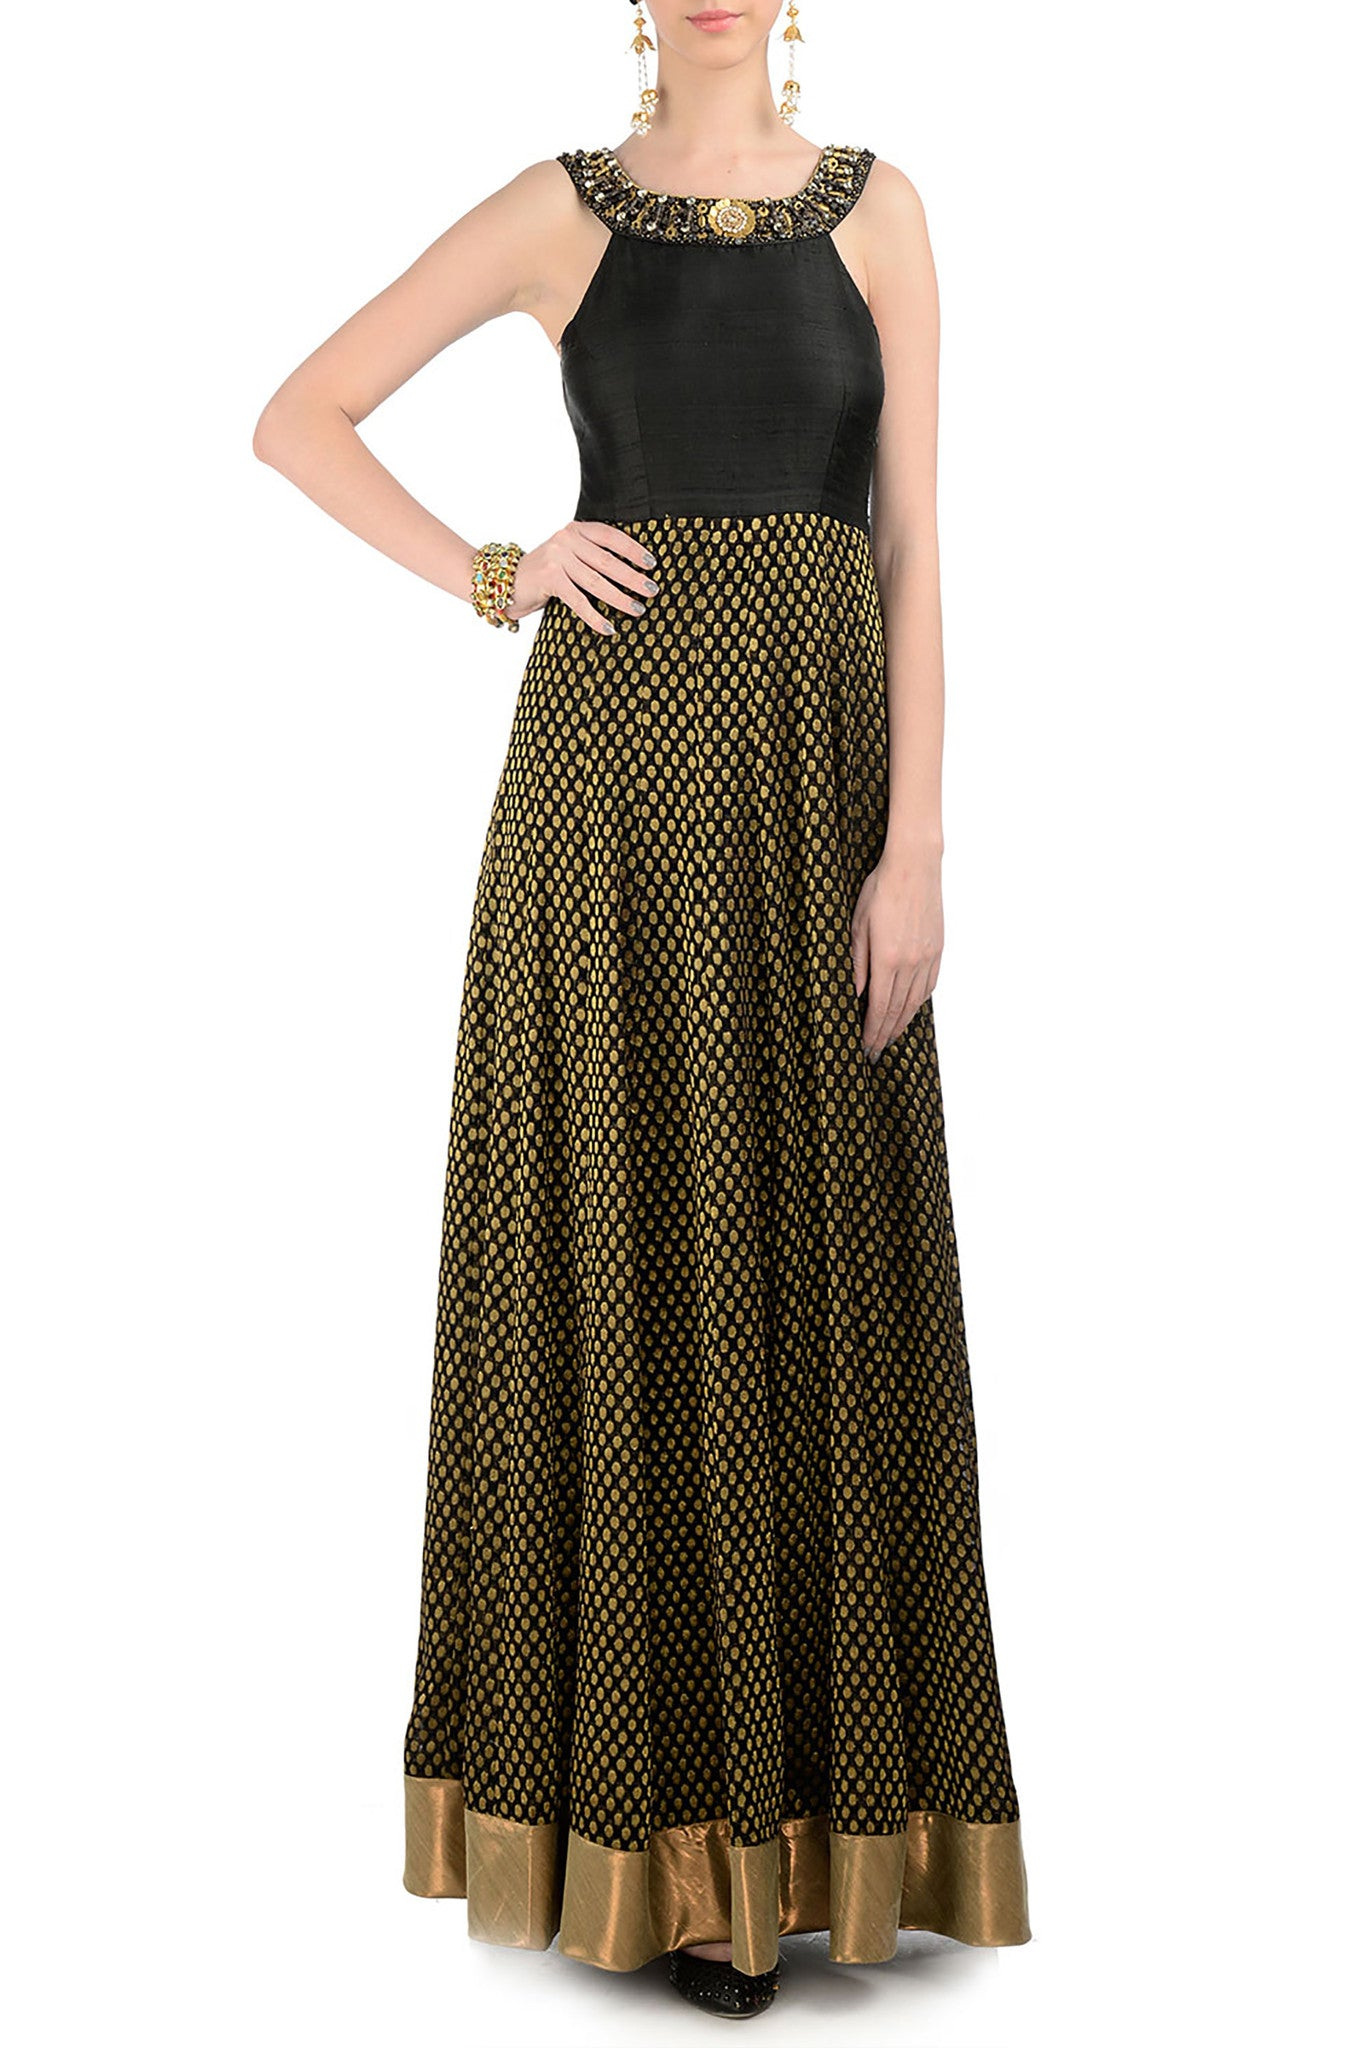 Black & Gold Gown Front